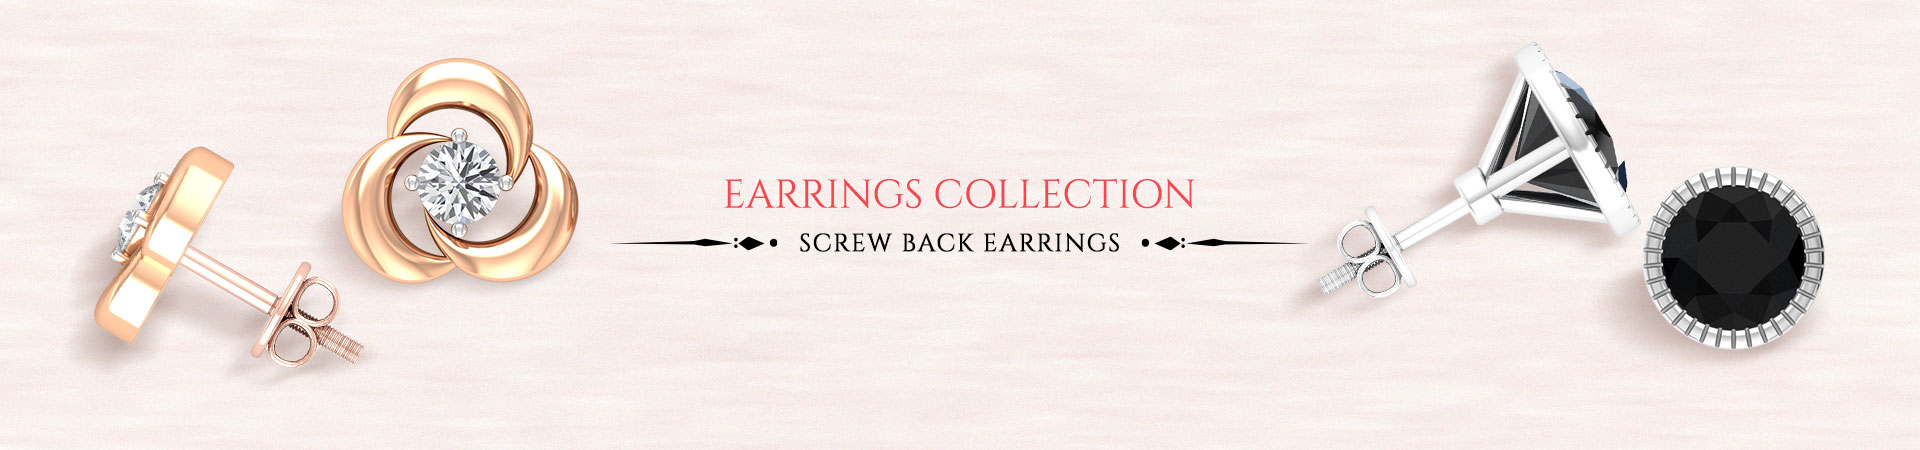 Screw Back Earrings